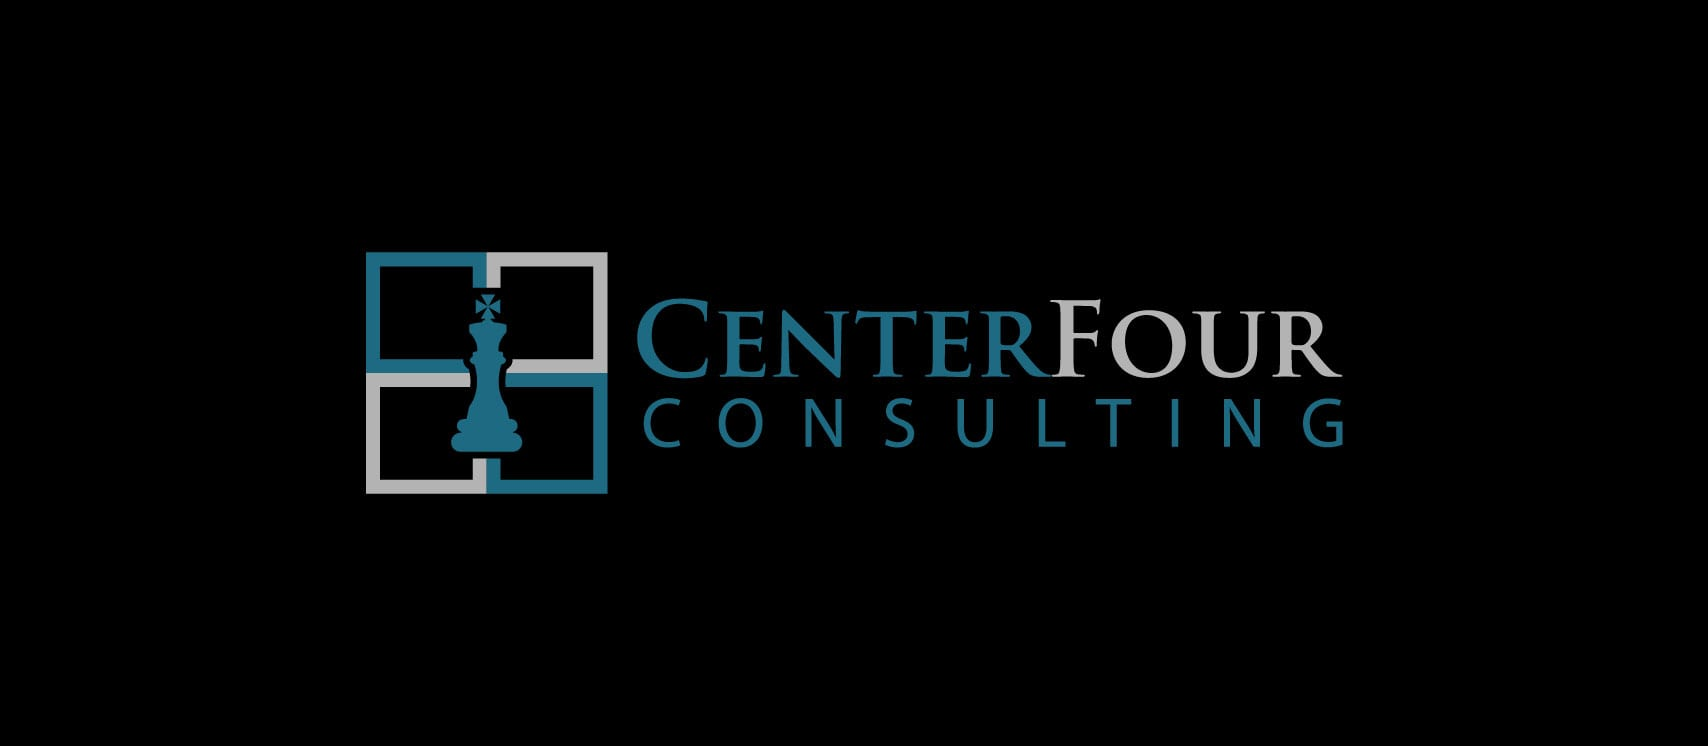 Centerfour consulting